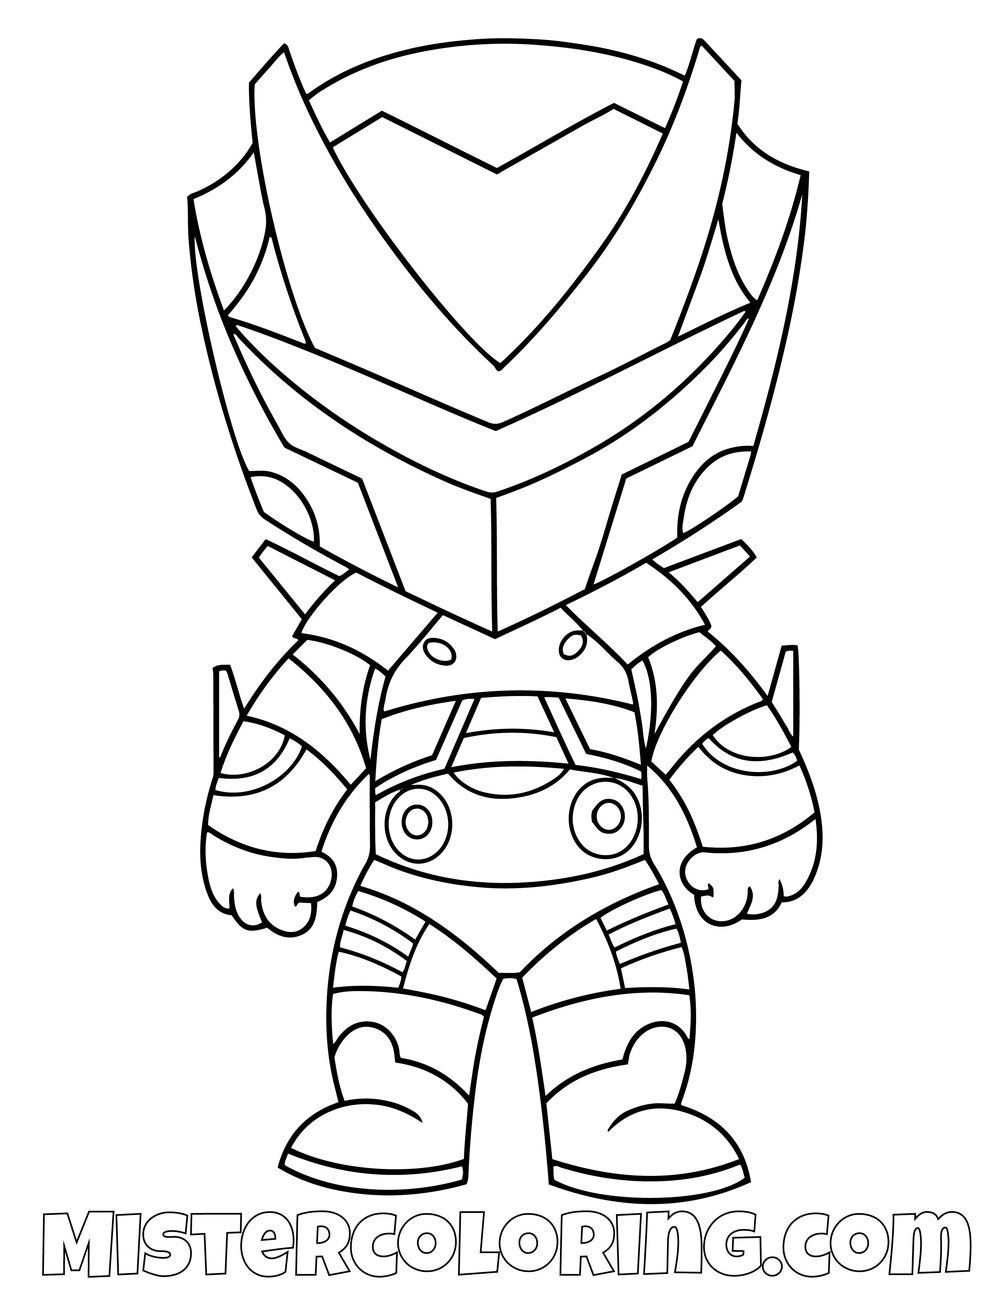 Free Omega Chibi Fortnite Skin Coloring Page For Kids Coloring